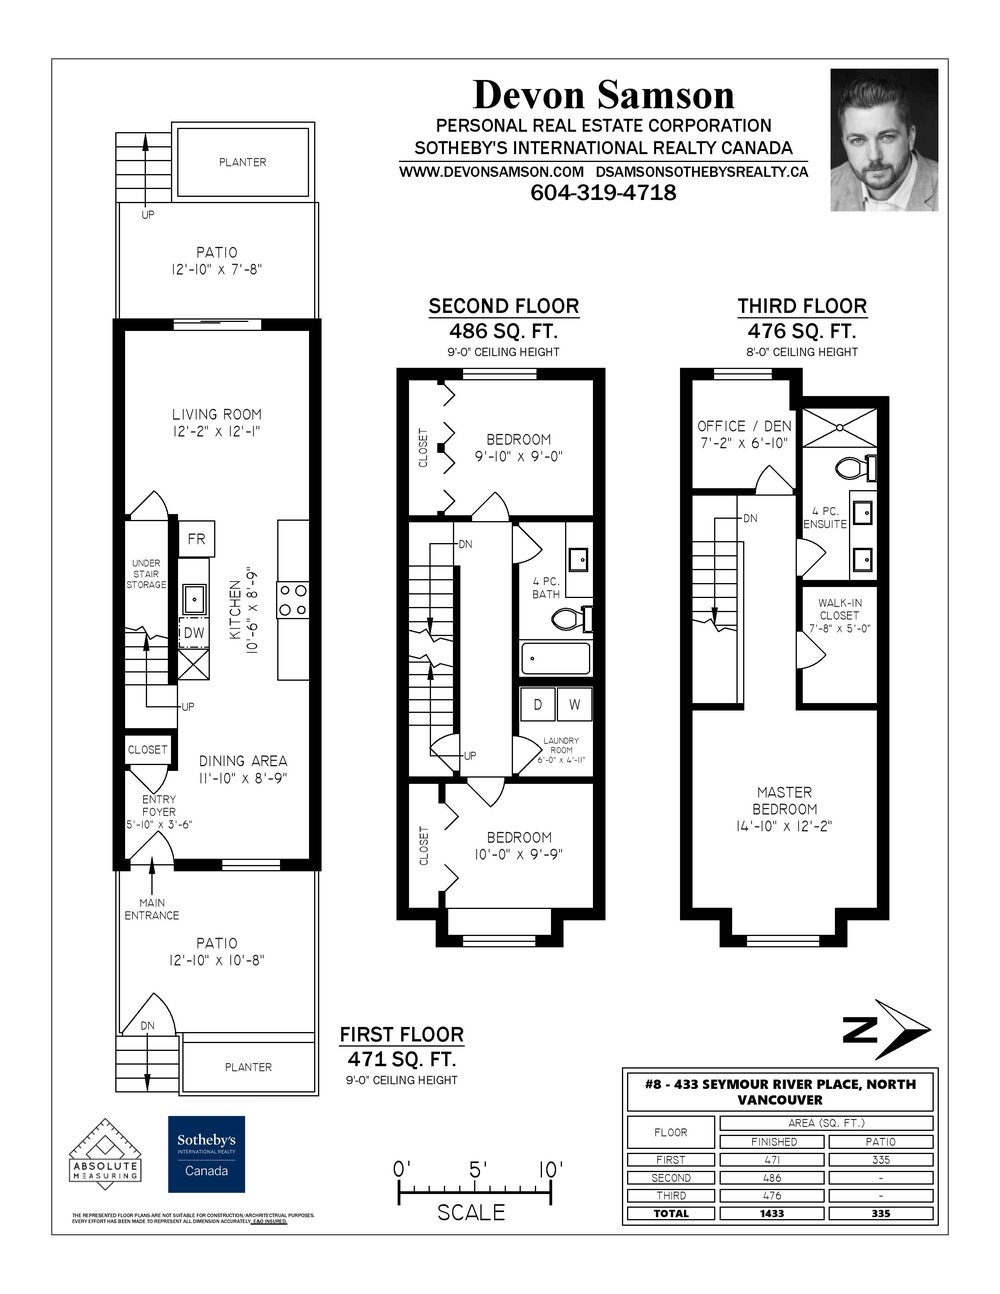 Floor Plan for a 3 Bedroom Townhouse in